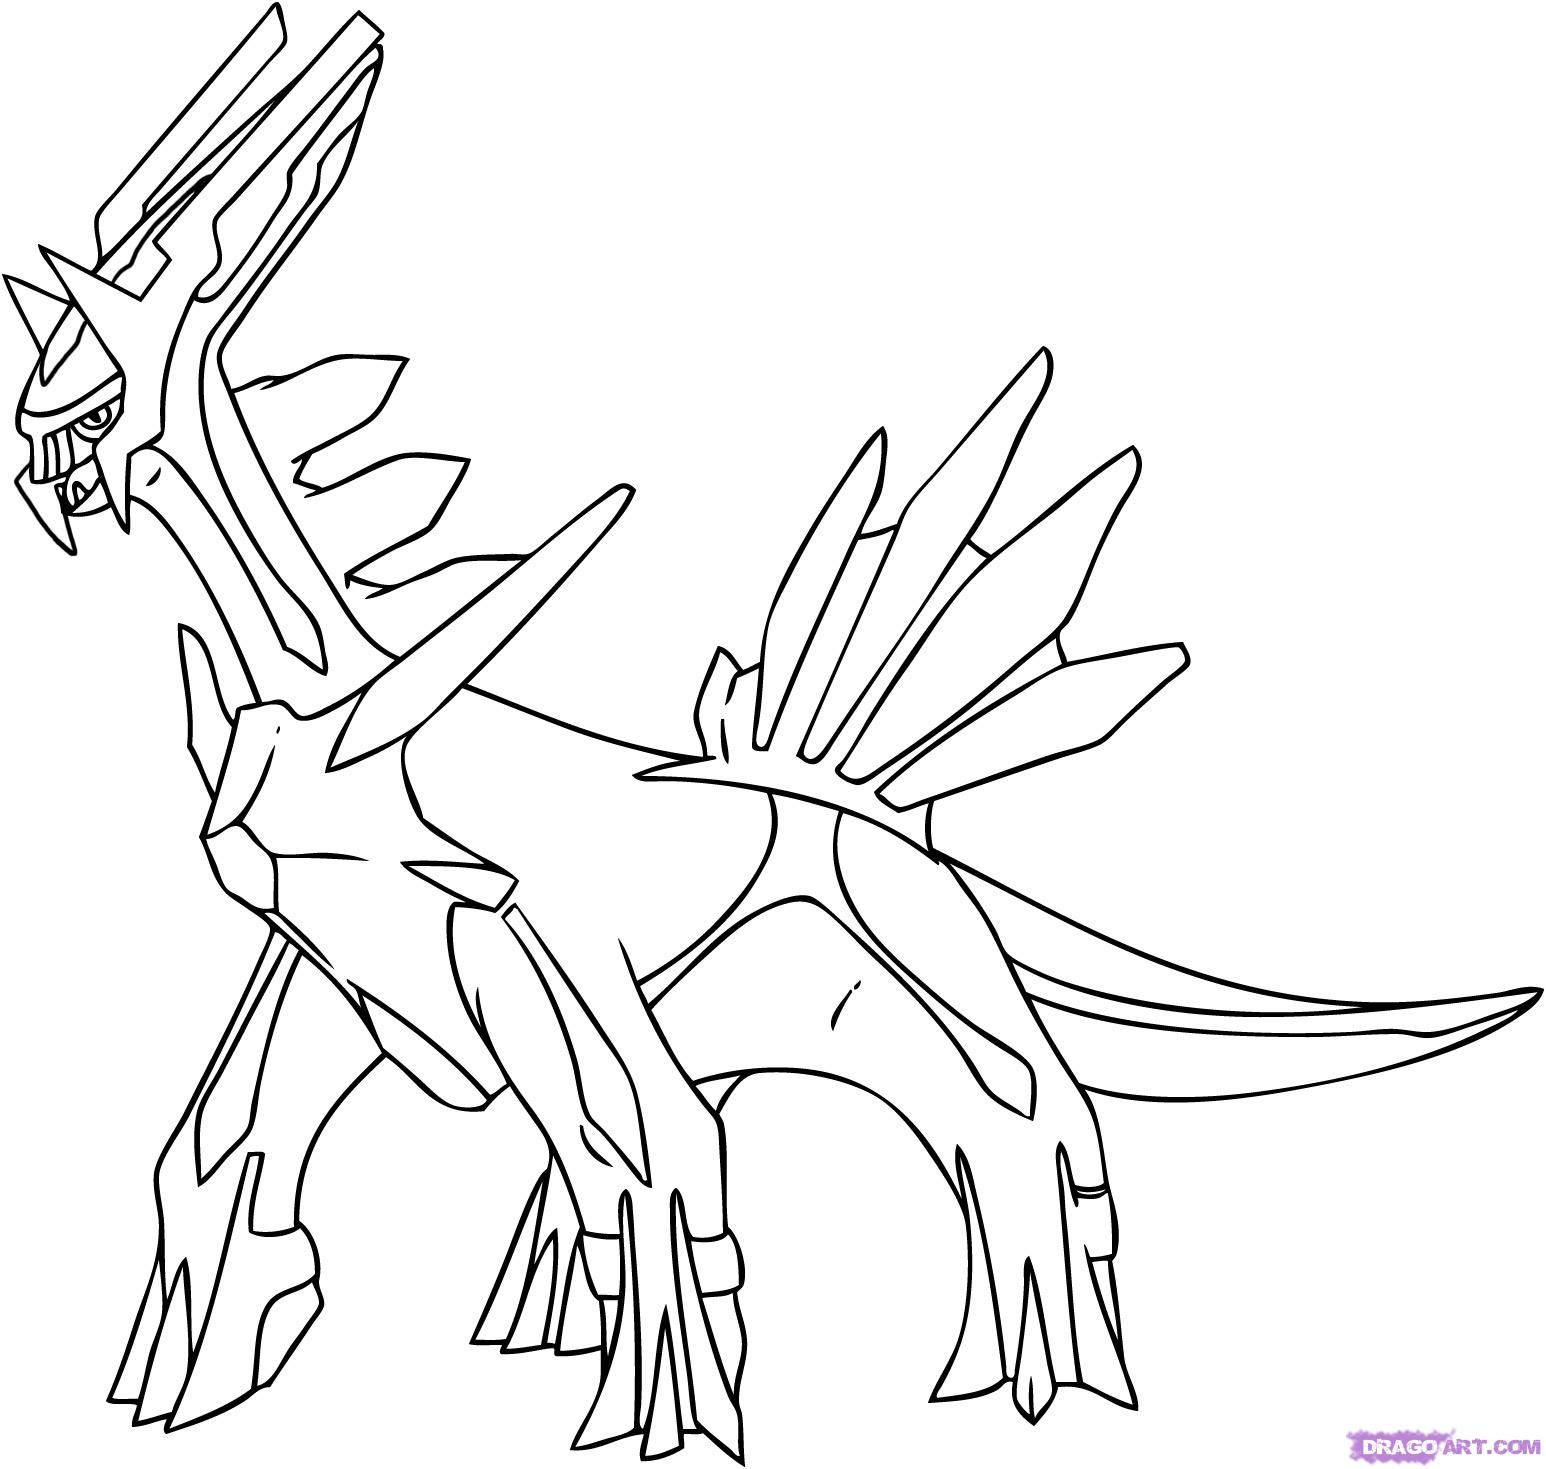 Dialga Coloring Pages Collection Pokemon Coloring Pokemon Coloring Pages Dragon Coloring Page